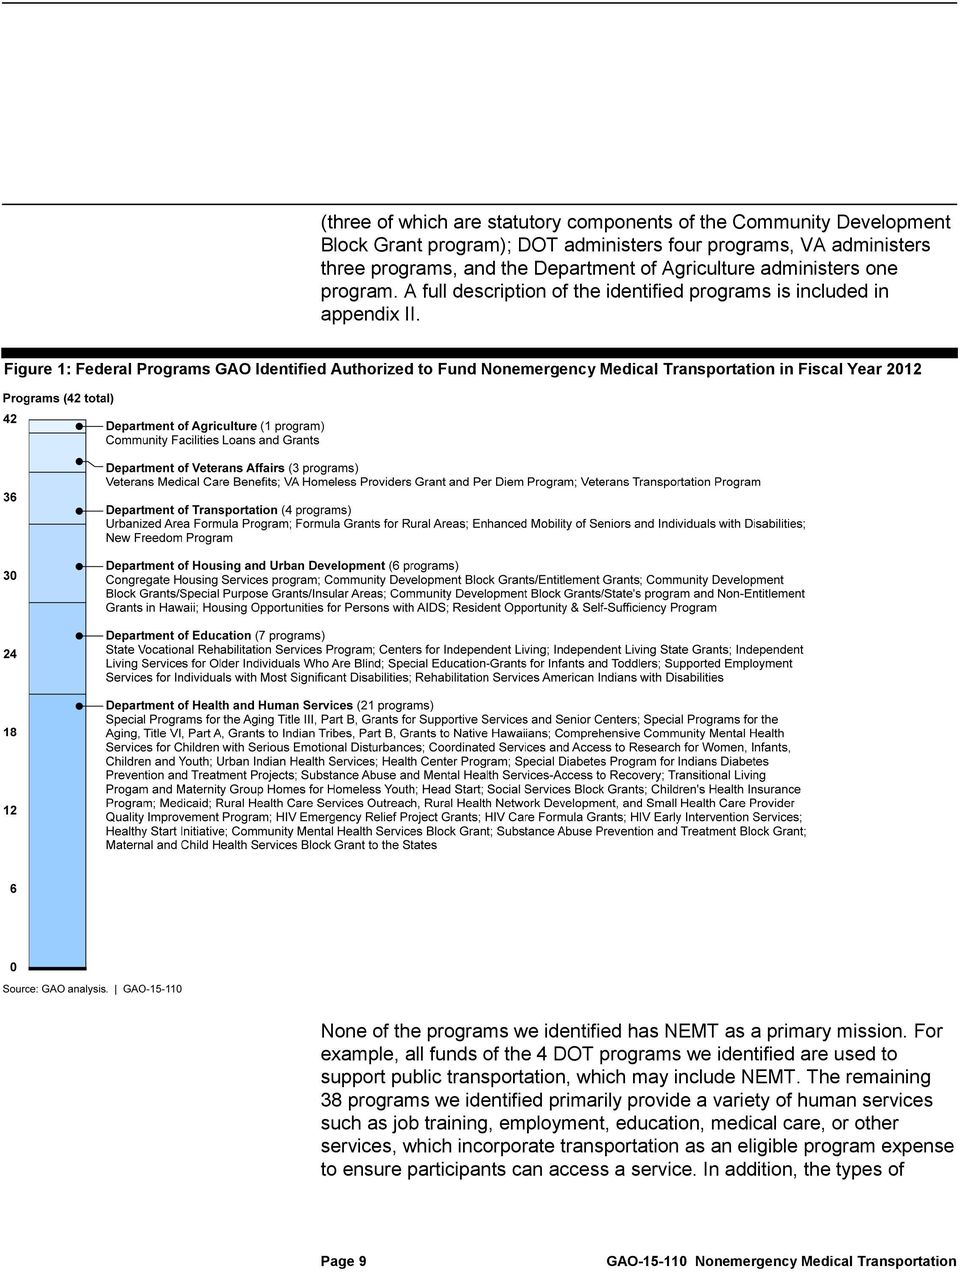 Figure 1: Federal Programs GAO Identified Authorized to Fund Nonemergency Medical Transportation in Fiscal Year 2012 None of the programs we identified has NEMT as a primary mission.